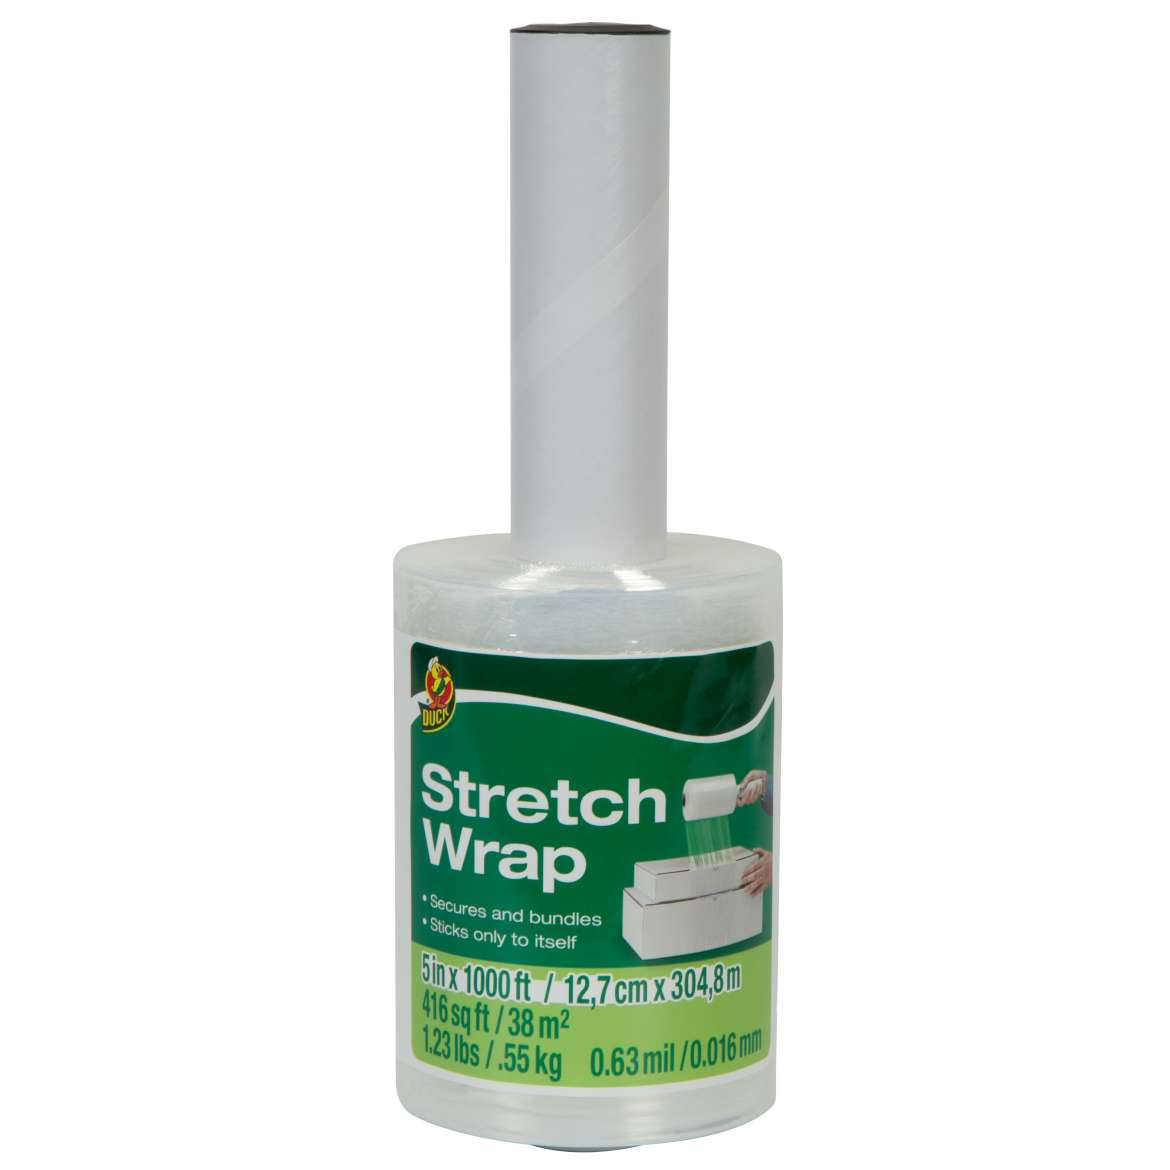 Duck® Brand Stretch Wrap Film - Clear, 5 in. x 1,000 ft. Image